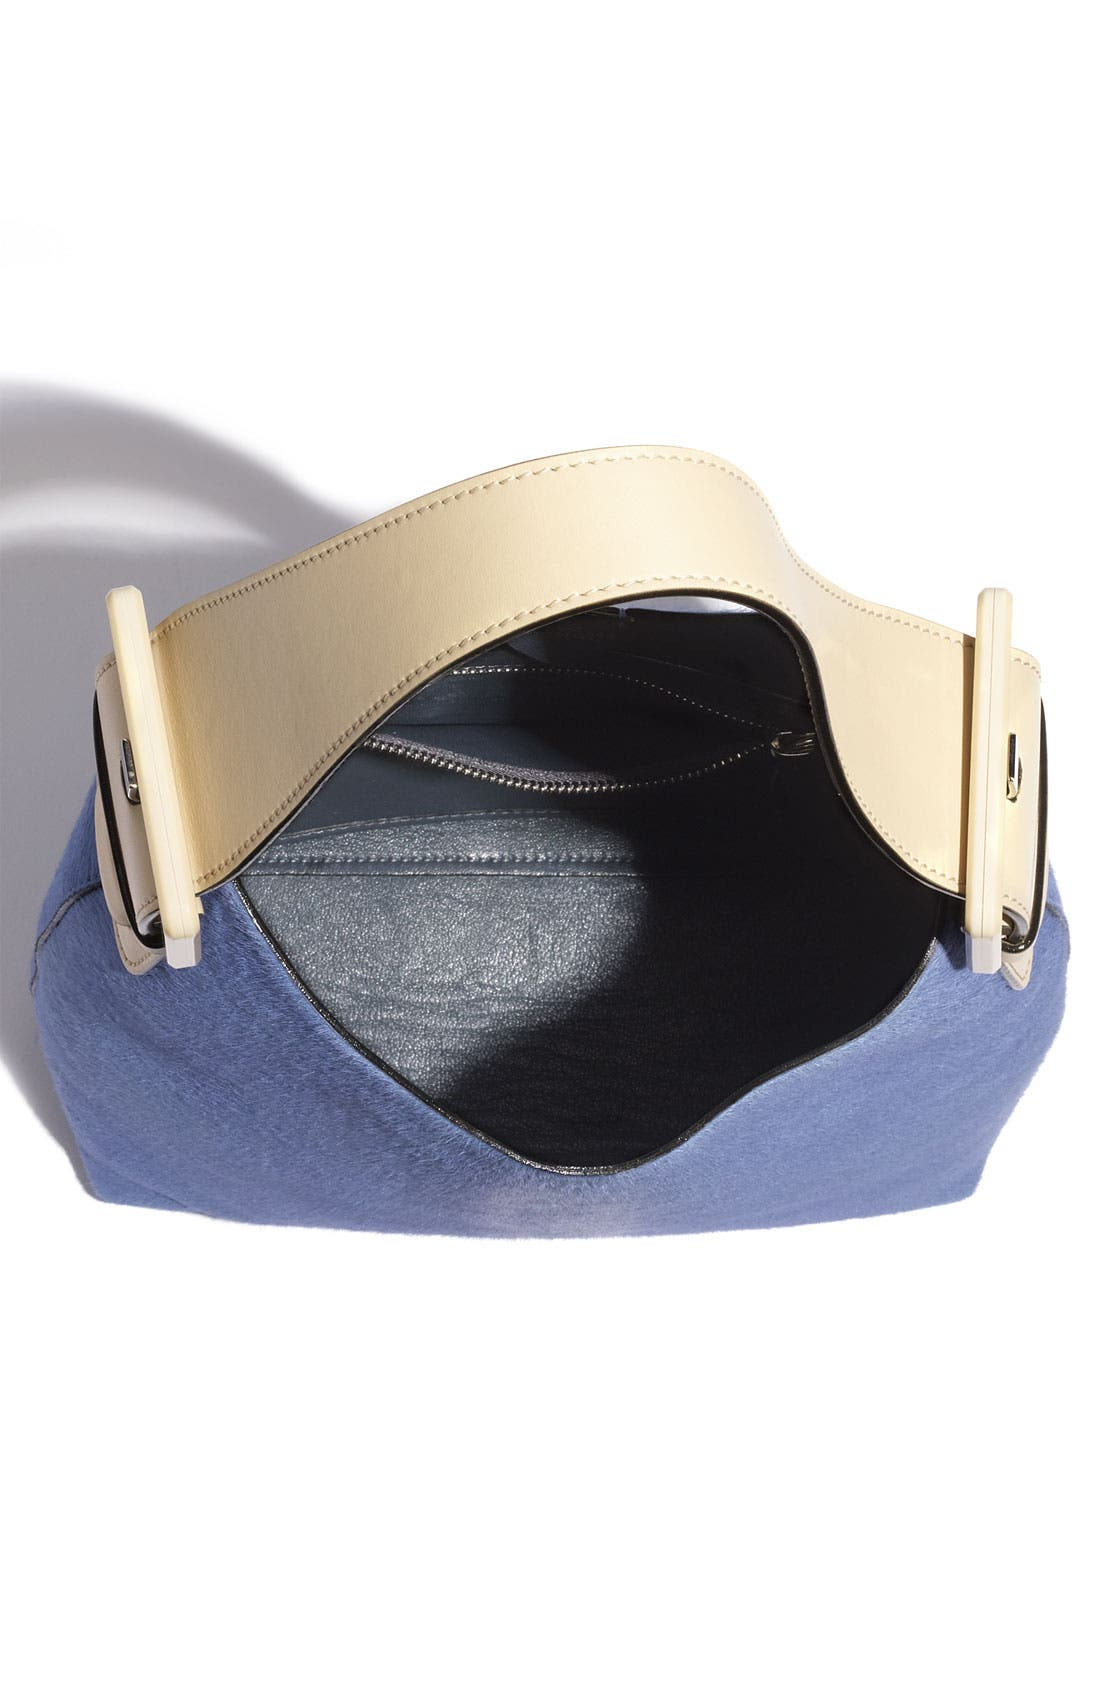 Alternate Image 3  - MARC JACOBS 'Sojo Solid Victoria' Calf Hair Handbag